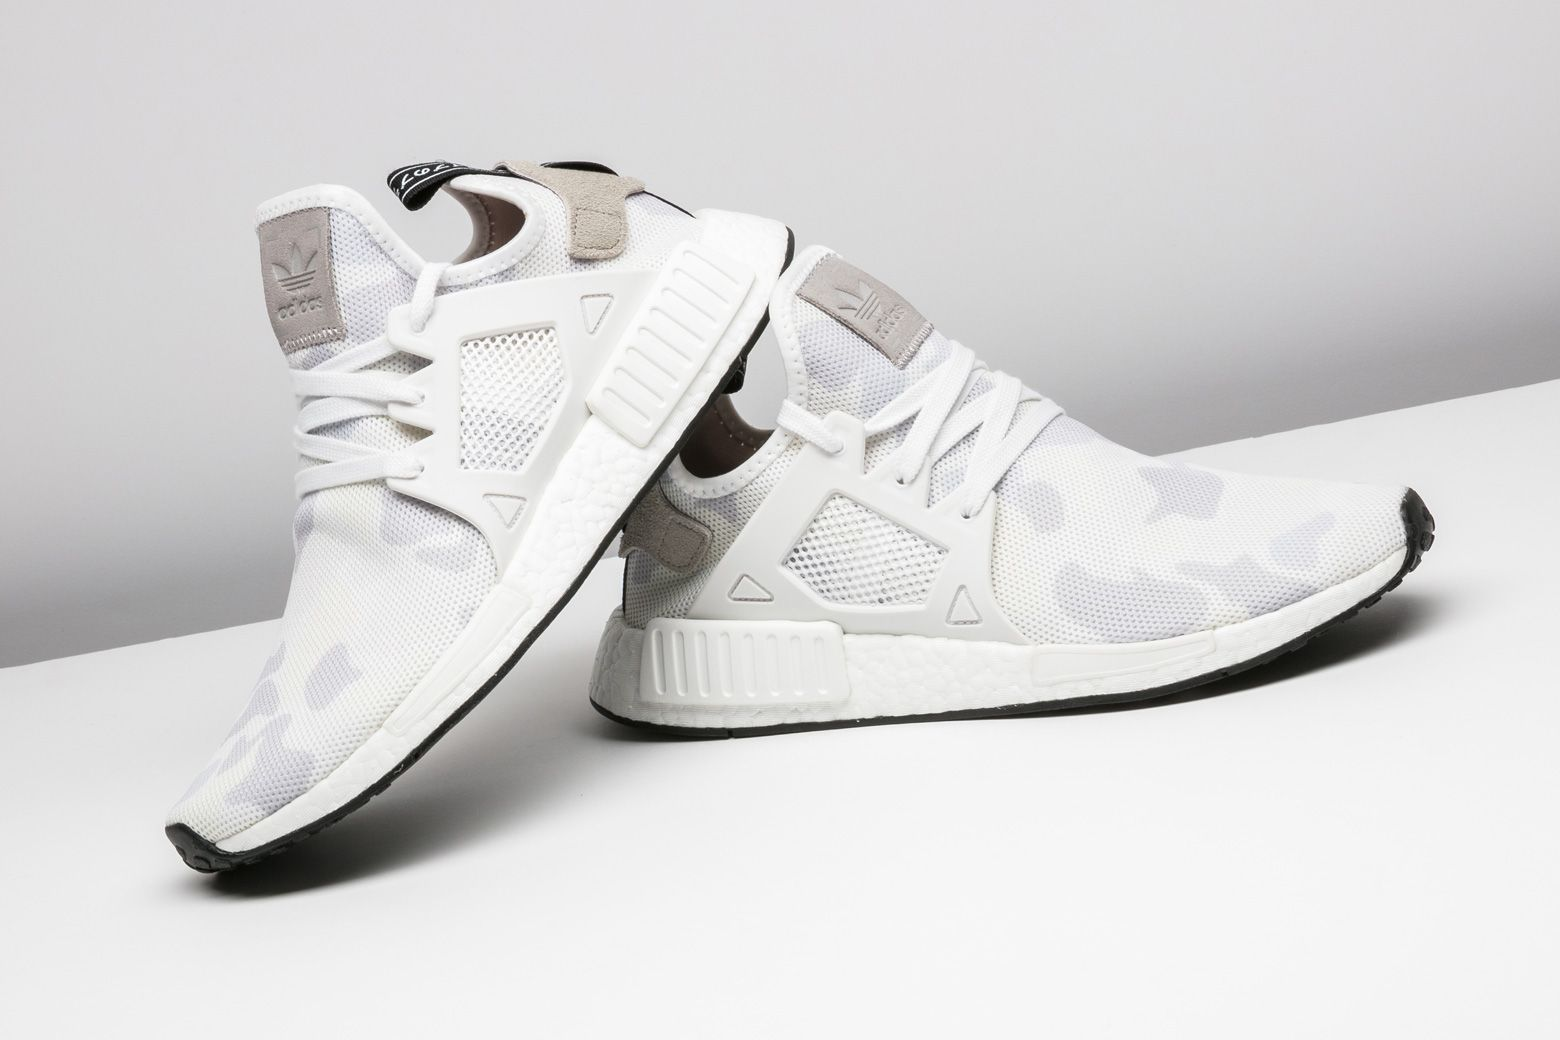 bfb73c76c White duck camo on the upper give this adidas NMD XR1 a clean look. http